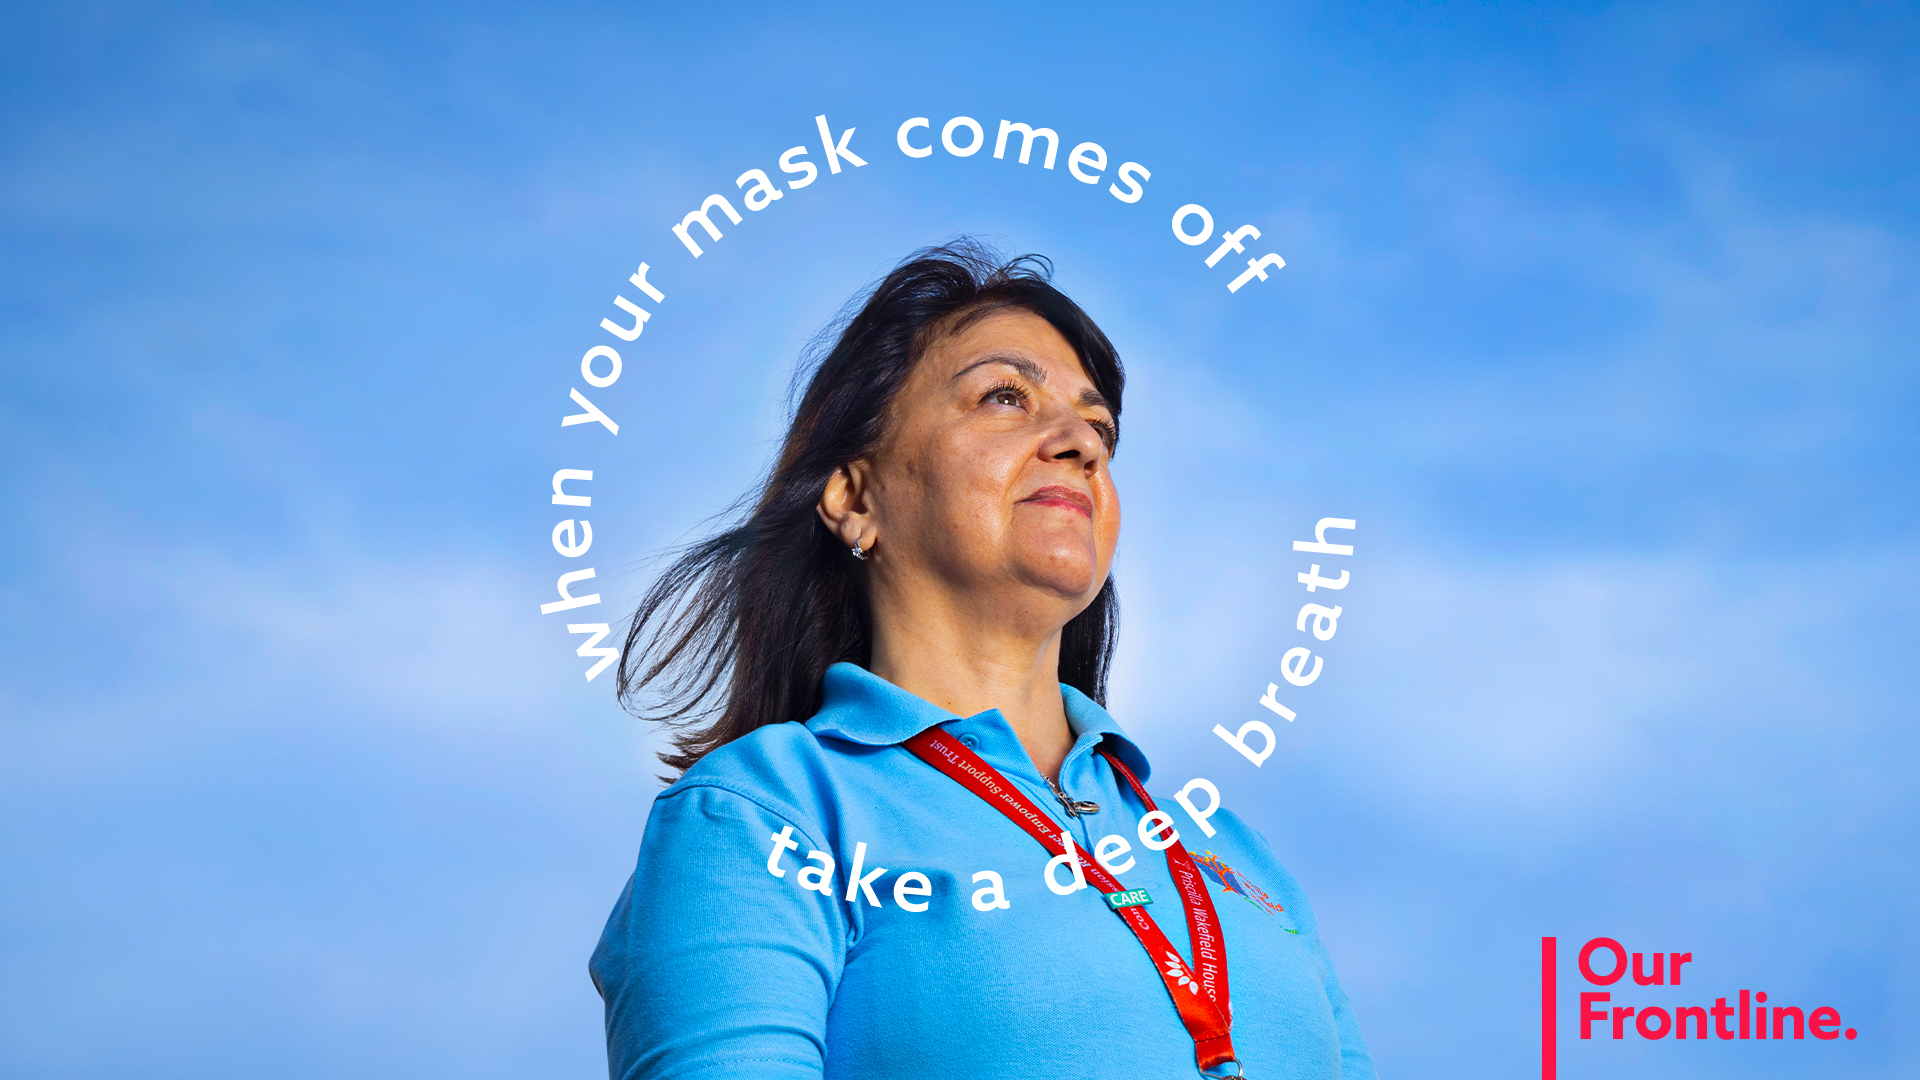 When your mask comes off, take a deep breath